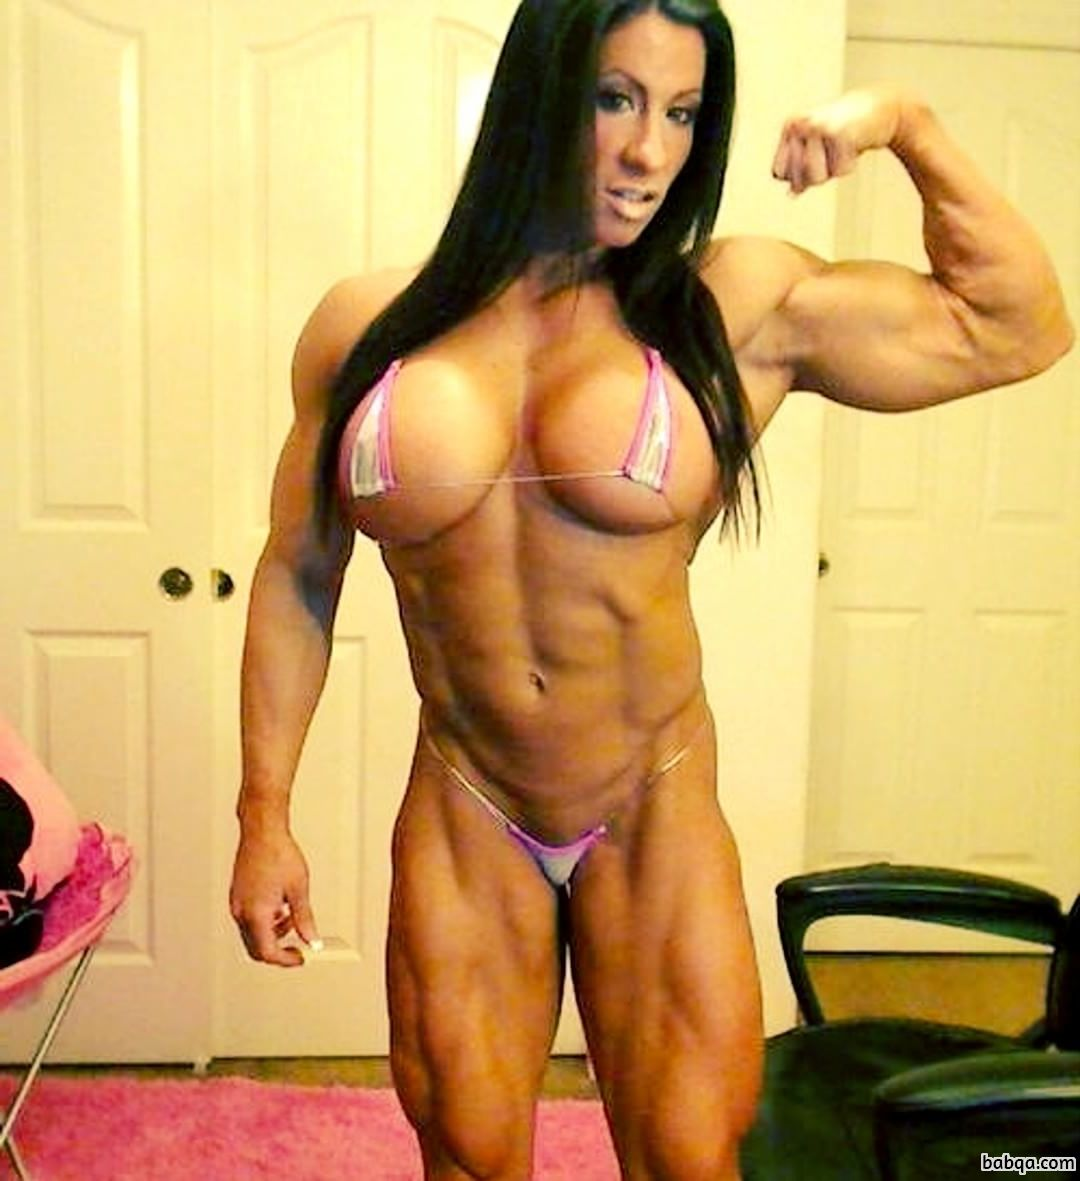 spicy lady with strong body and toned arms picture from linkedin